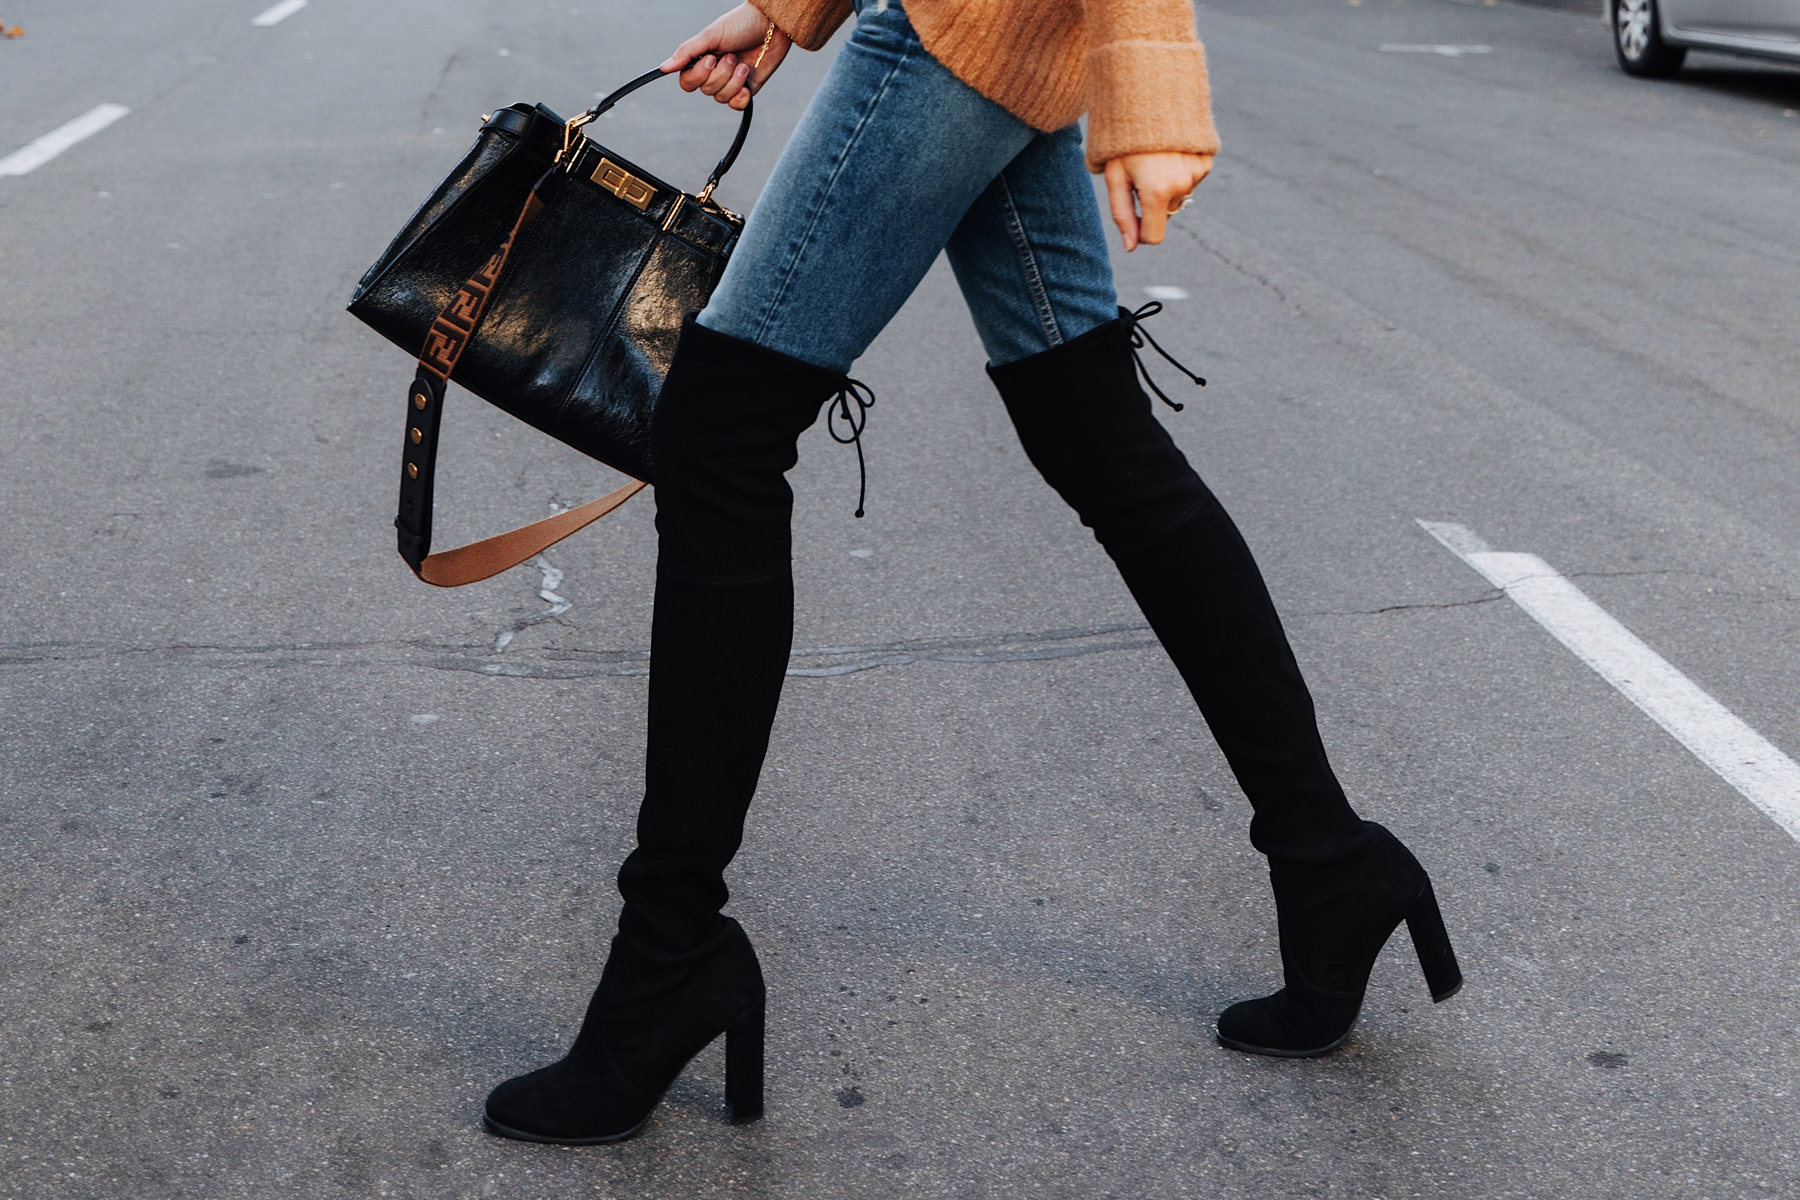 Fashion Jackson Wearing Stuart Weitzman Tieland Black Over the Knee Boots Fendi Peekaboo Black Handbag